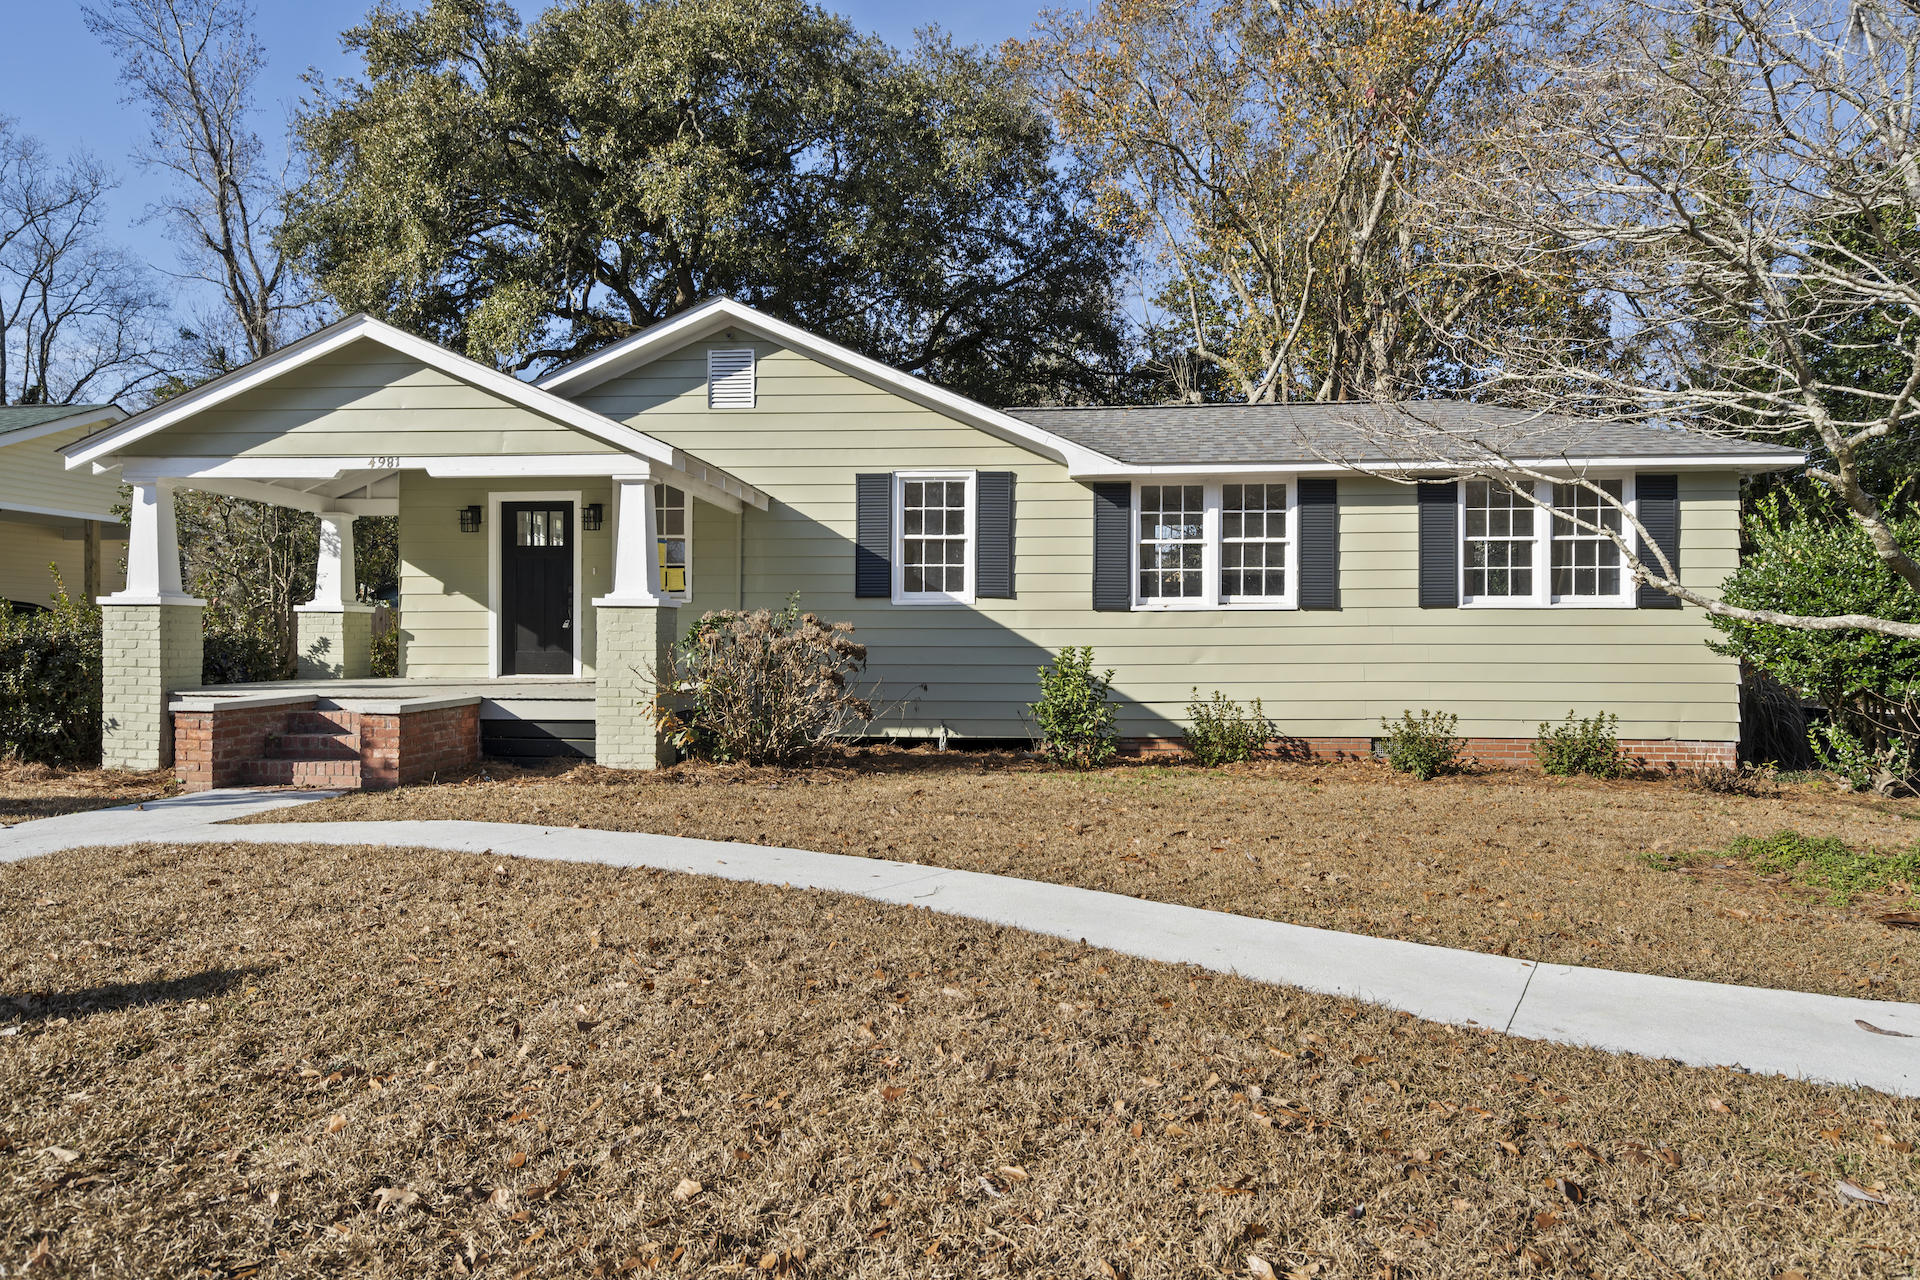 4981 Alpha Street North Charleston, SC 29405